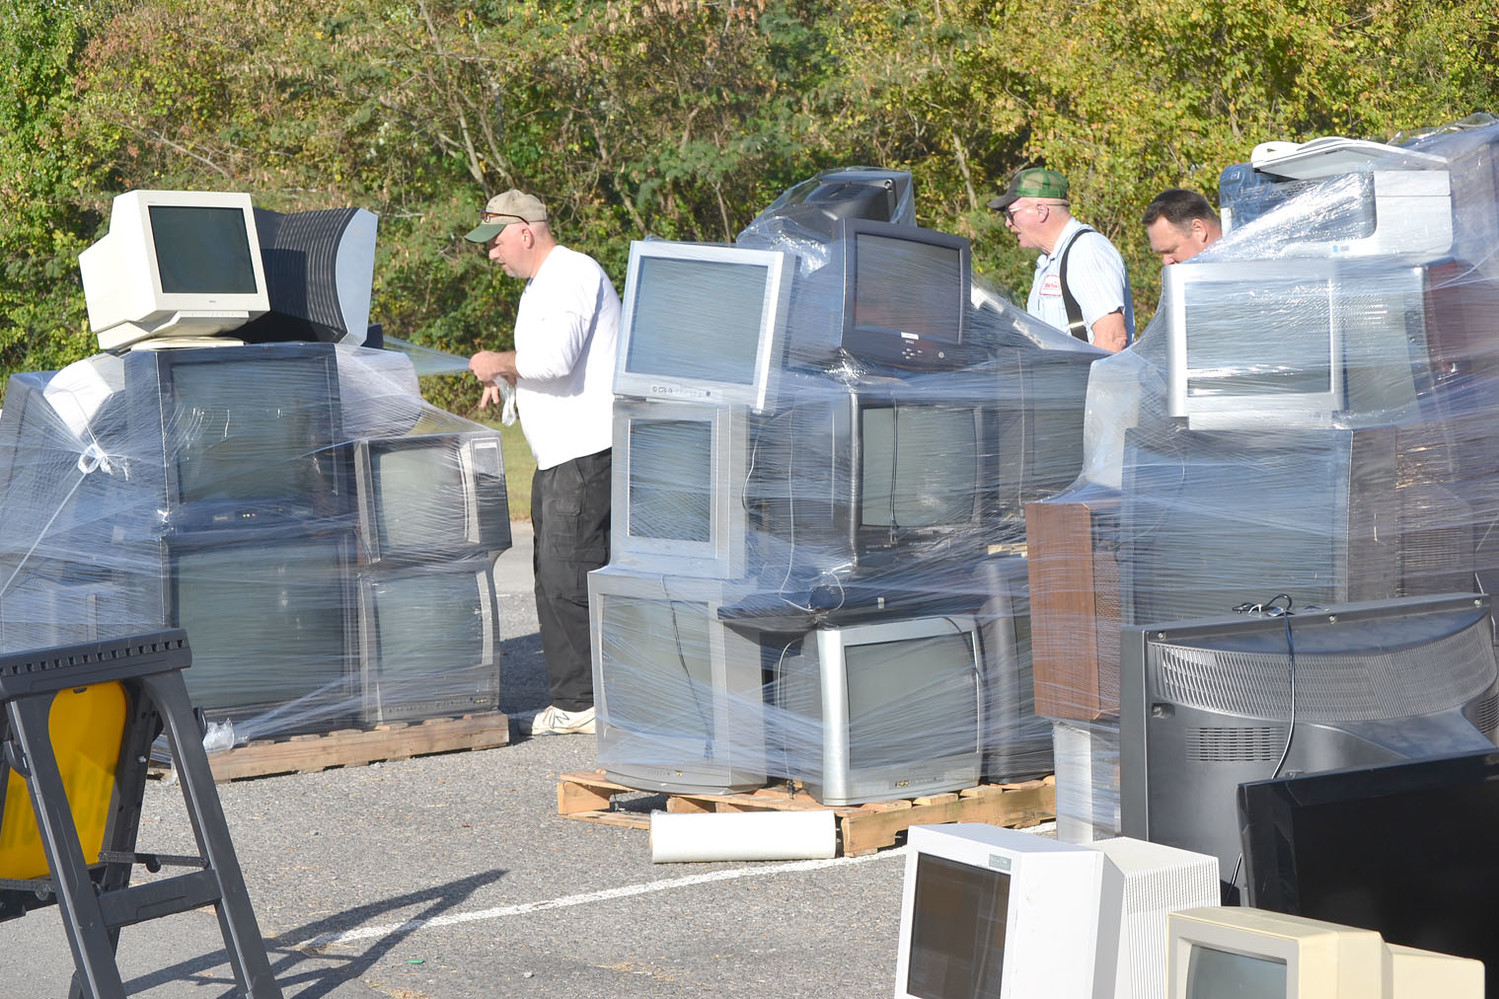 ELECTRONICS WERE the most popular item that was disposed of at Saturday's Household Hazardous Waste Collection Day.